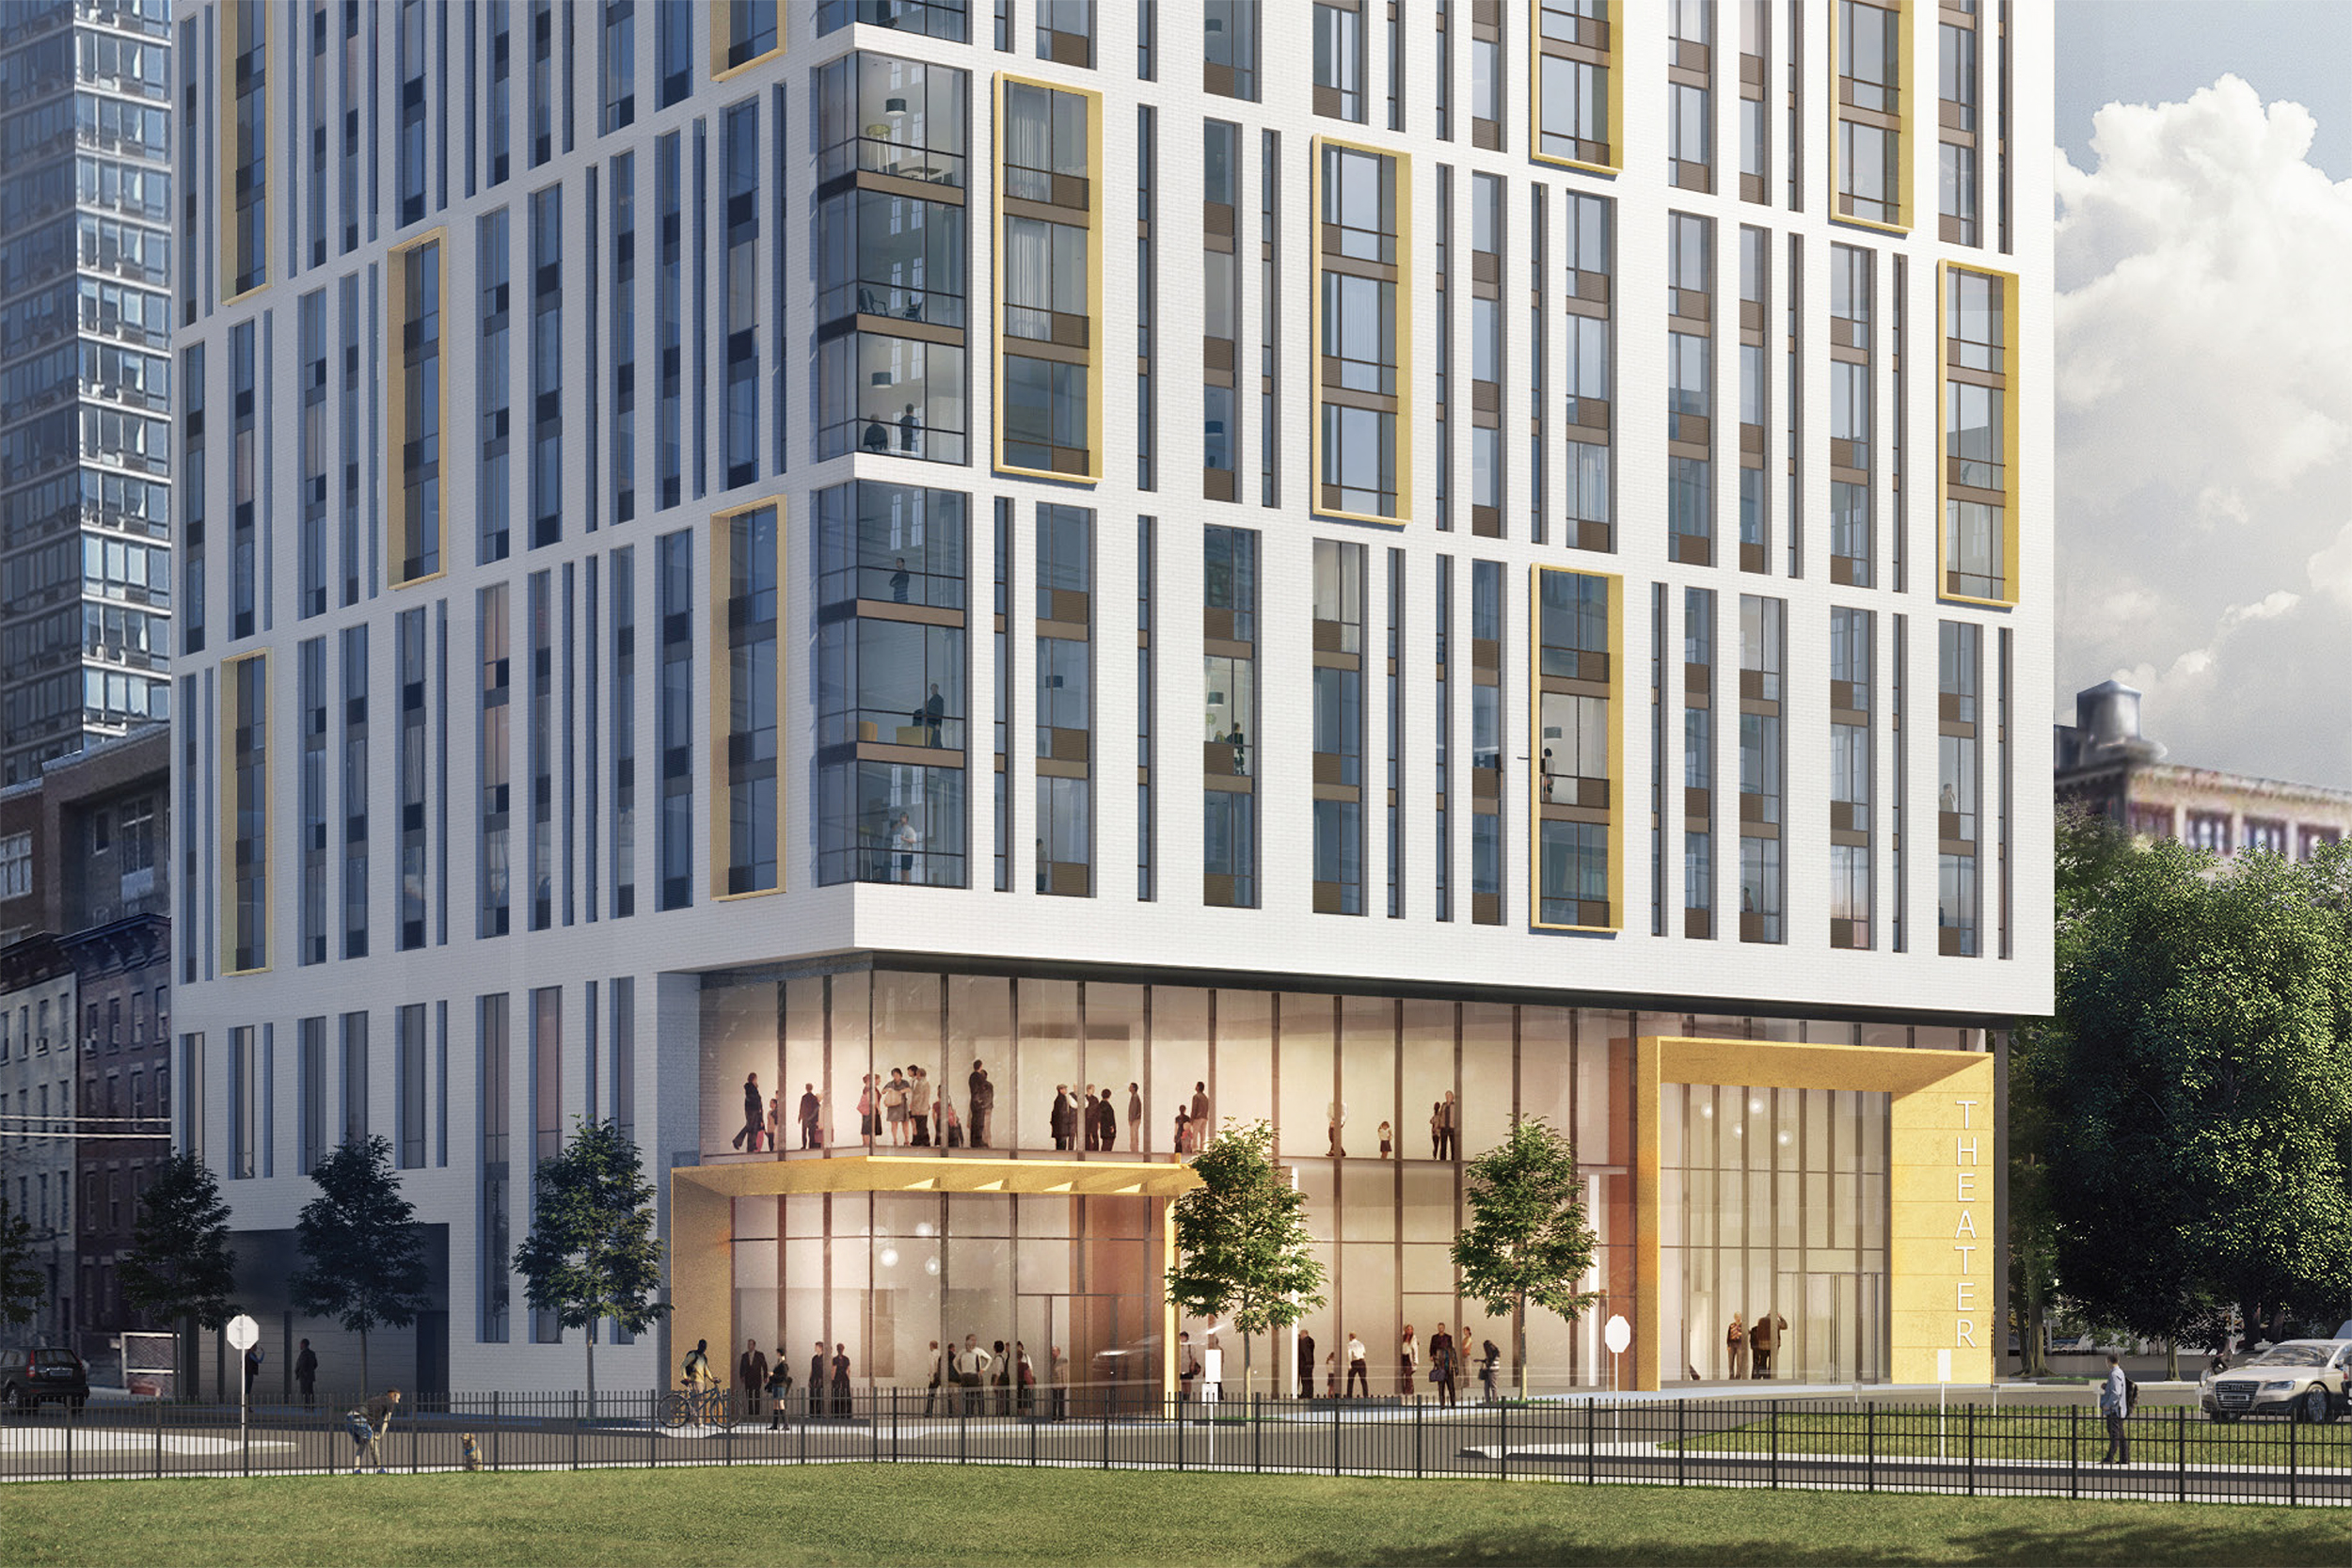 Close-up rendering of 321 Warren Street in Jersey City. Credit: Fogarty Finger Architecture